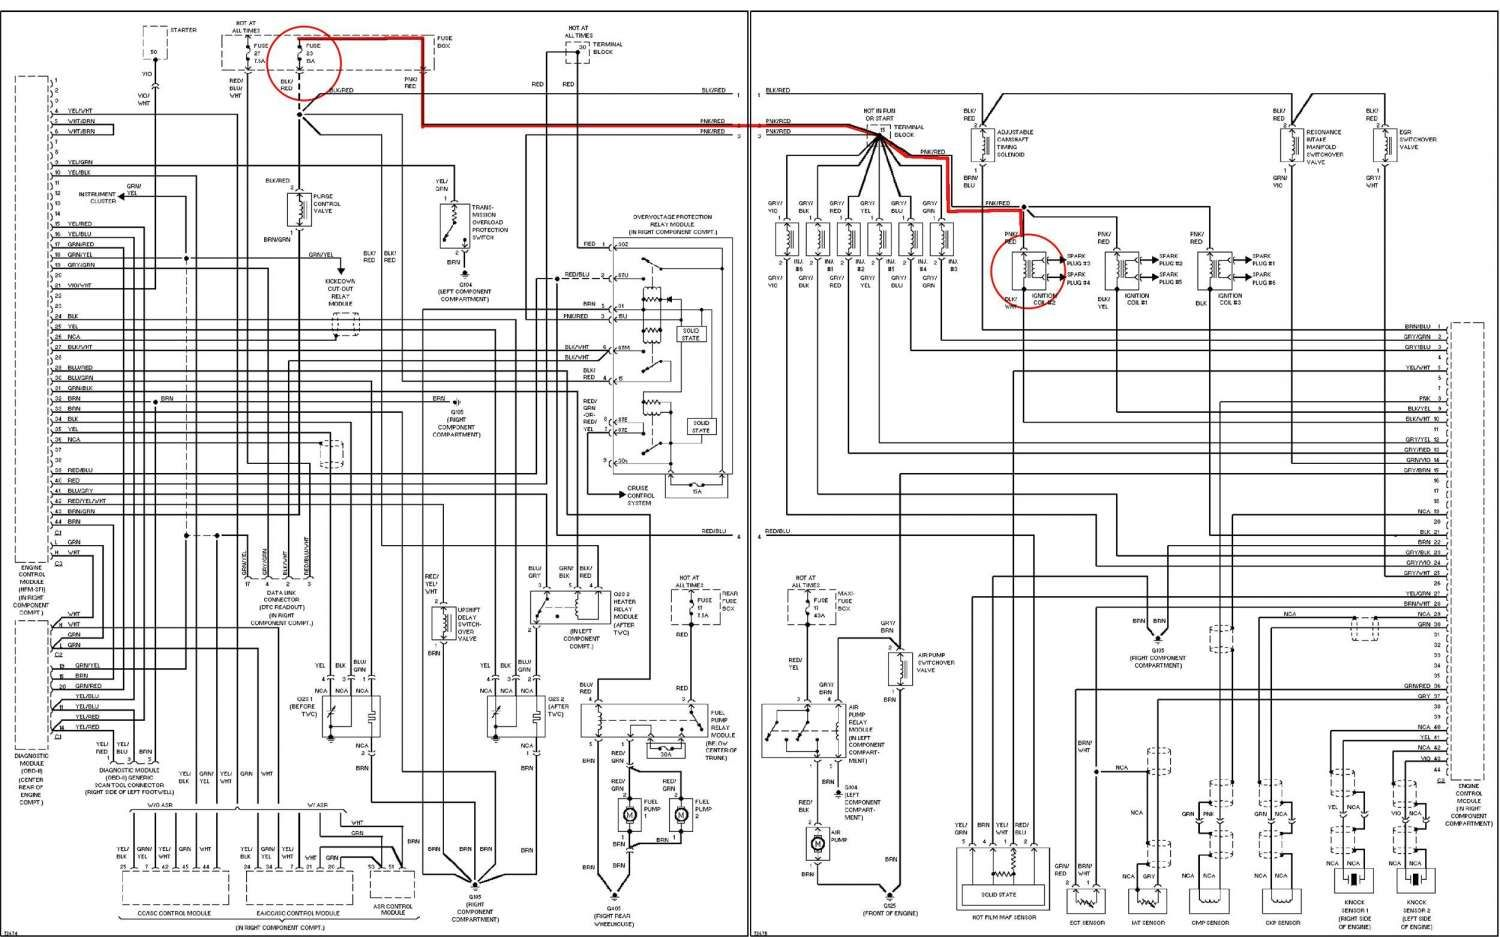 17 Mercedes Car Wiring Diagram Car Diagram Wiringg Net Mercedes Car Elantra Car Mercedes